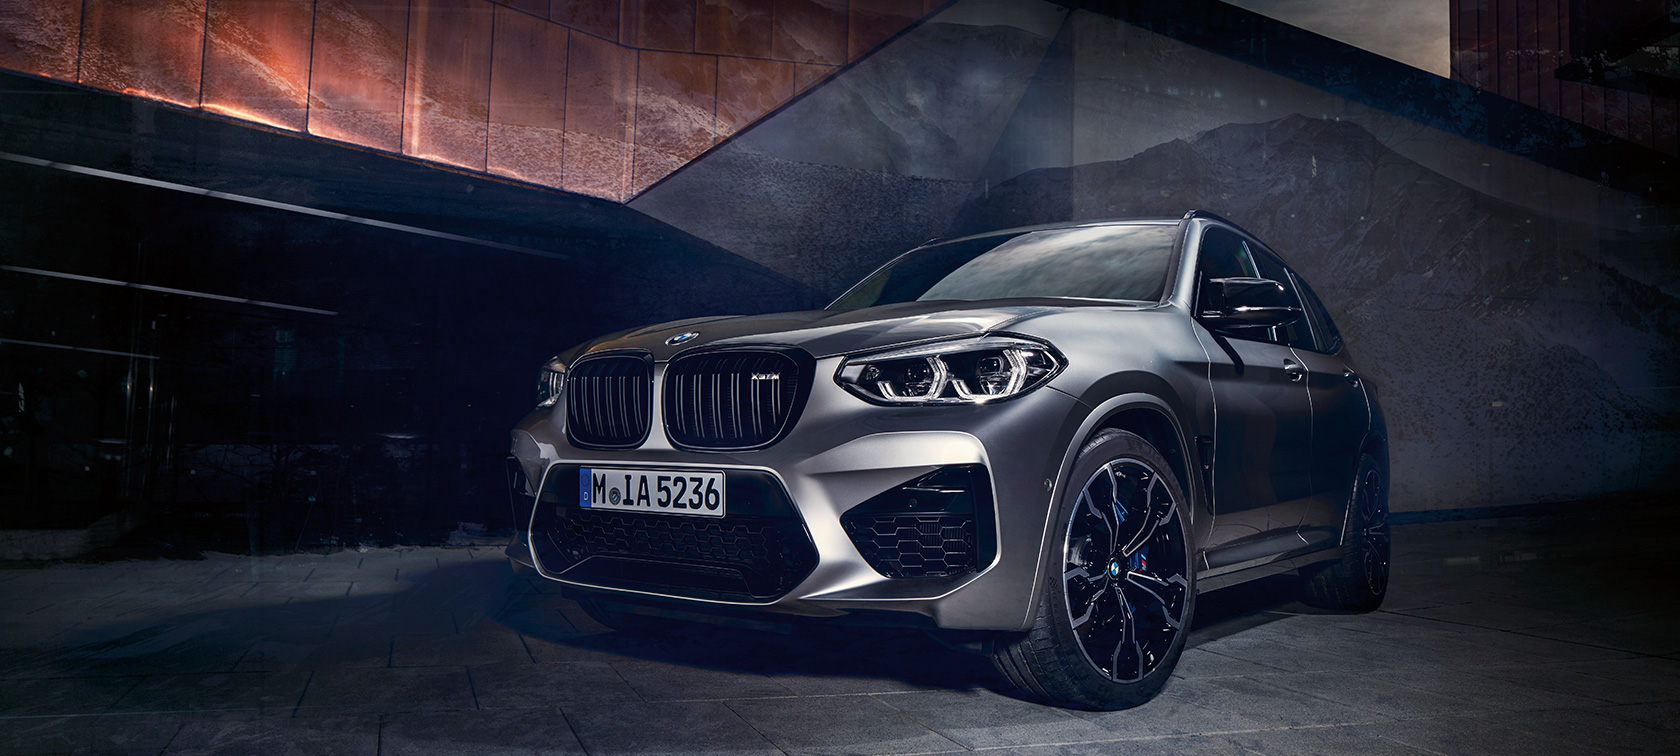 BMW X3 M Competition in Donington Grey metallic, exterior, three-quarter front view.